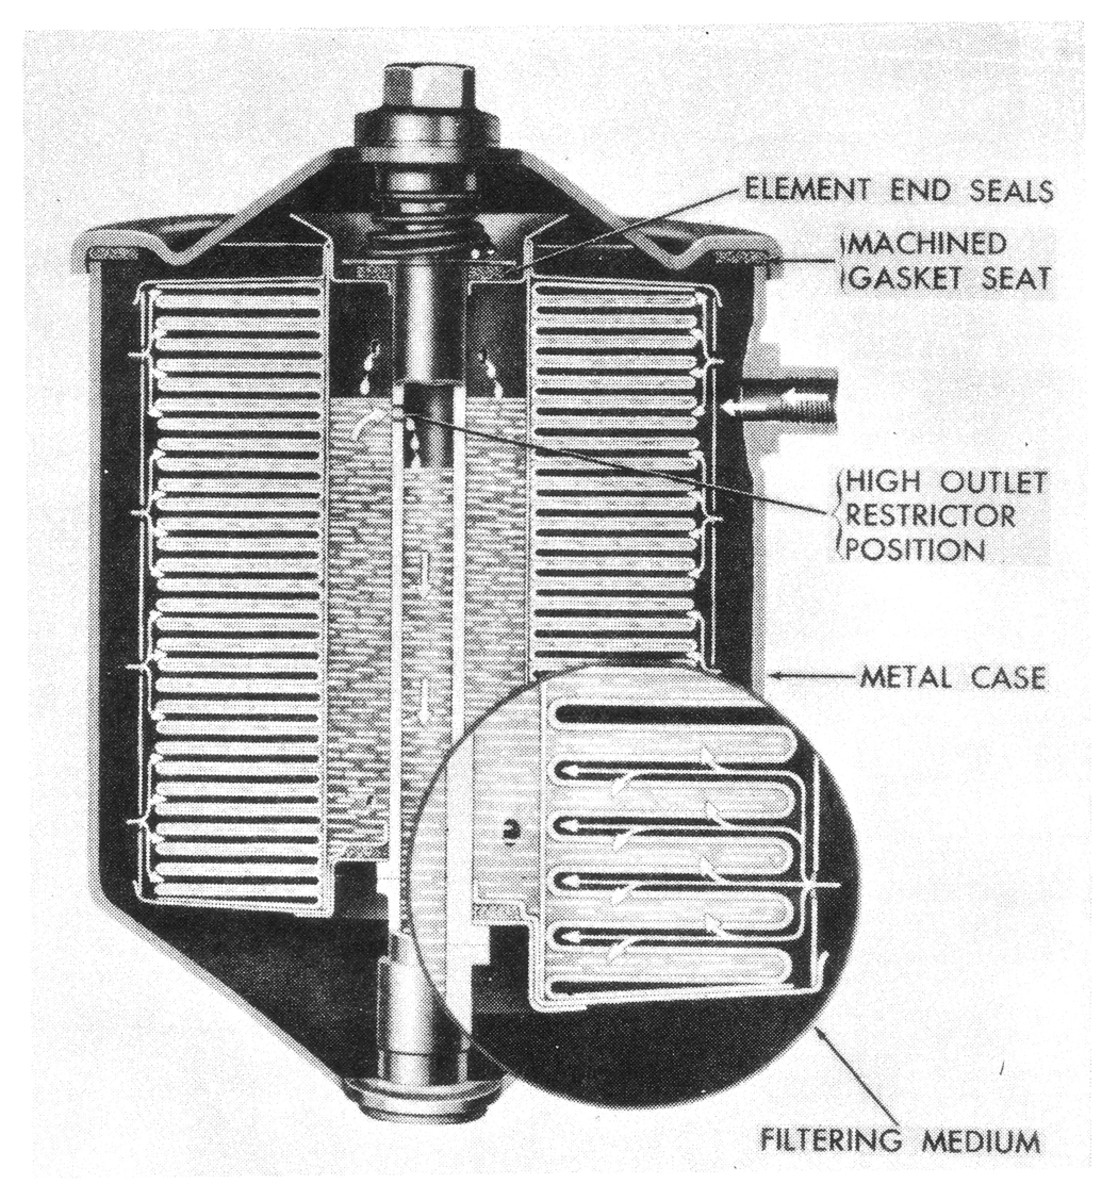 Most bypass oil filters, such as this Military Standard Junior used on many common HMVs, function at all pressures whenever the engine is running. In other words, they are an alternate route for a portion of the oil to take as it circulates through the engine. Oil is pumped into them — usually from an oil gallery in the engine block — and then is dumped back into the pan or timing cover after being filtered. So, even if your WC is only running 5 psi of oil pressure, at least its bypass filter is filtering... assuming it has the right element and isn't clogged with crud.